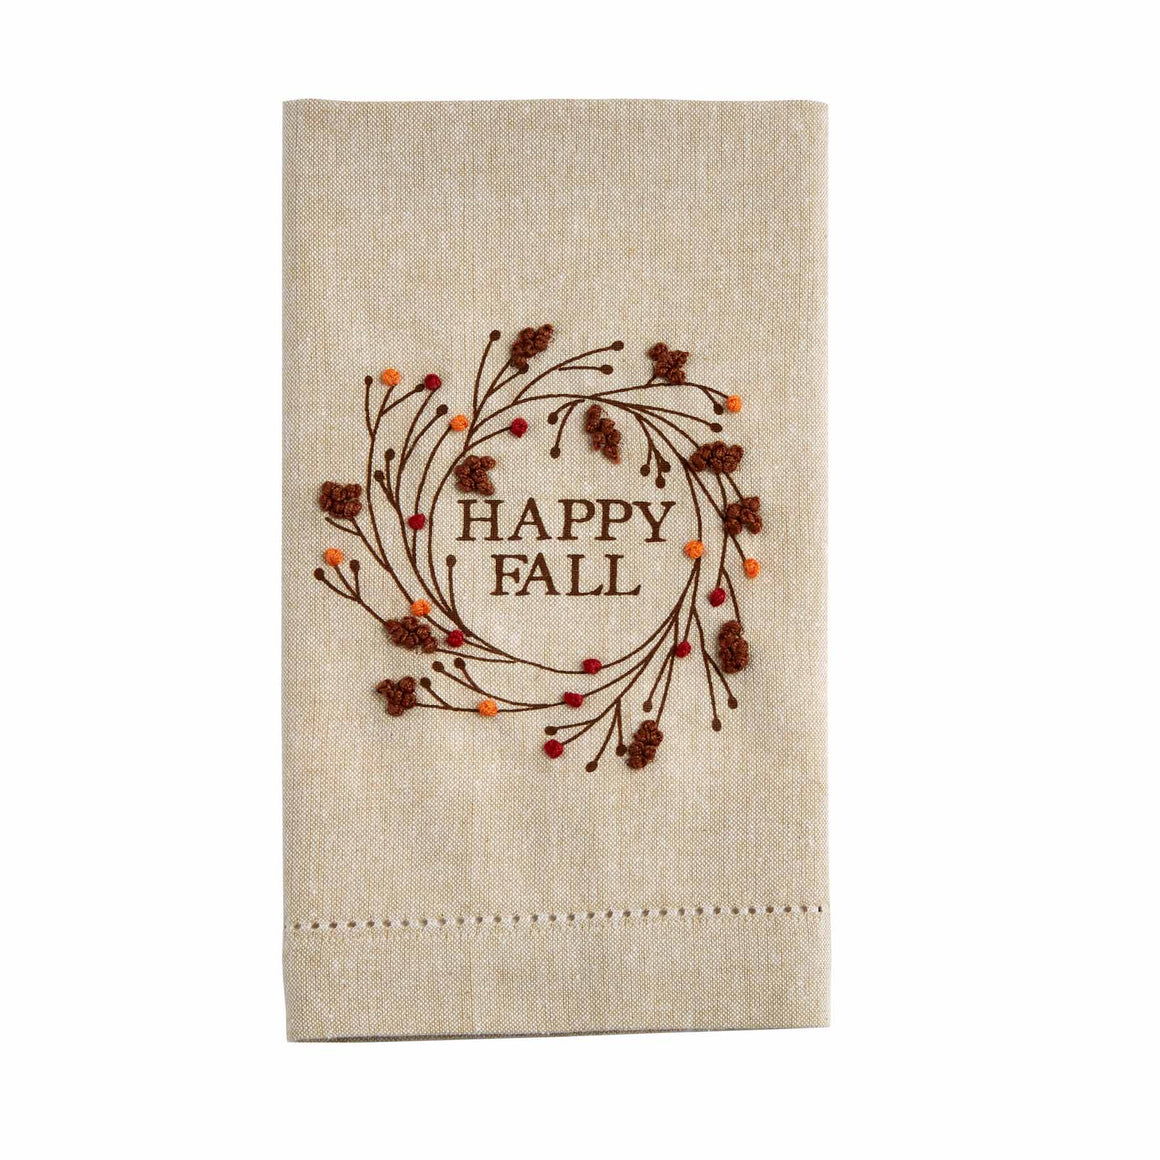 Happy Fall French Knot Tea Towel